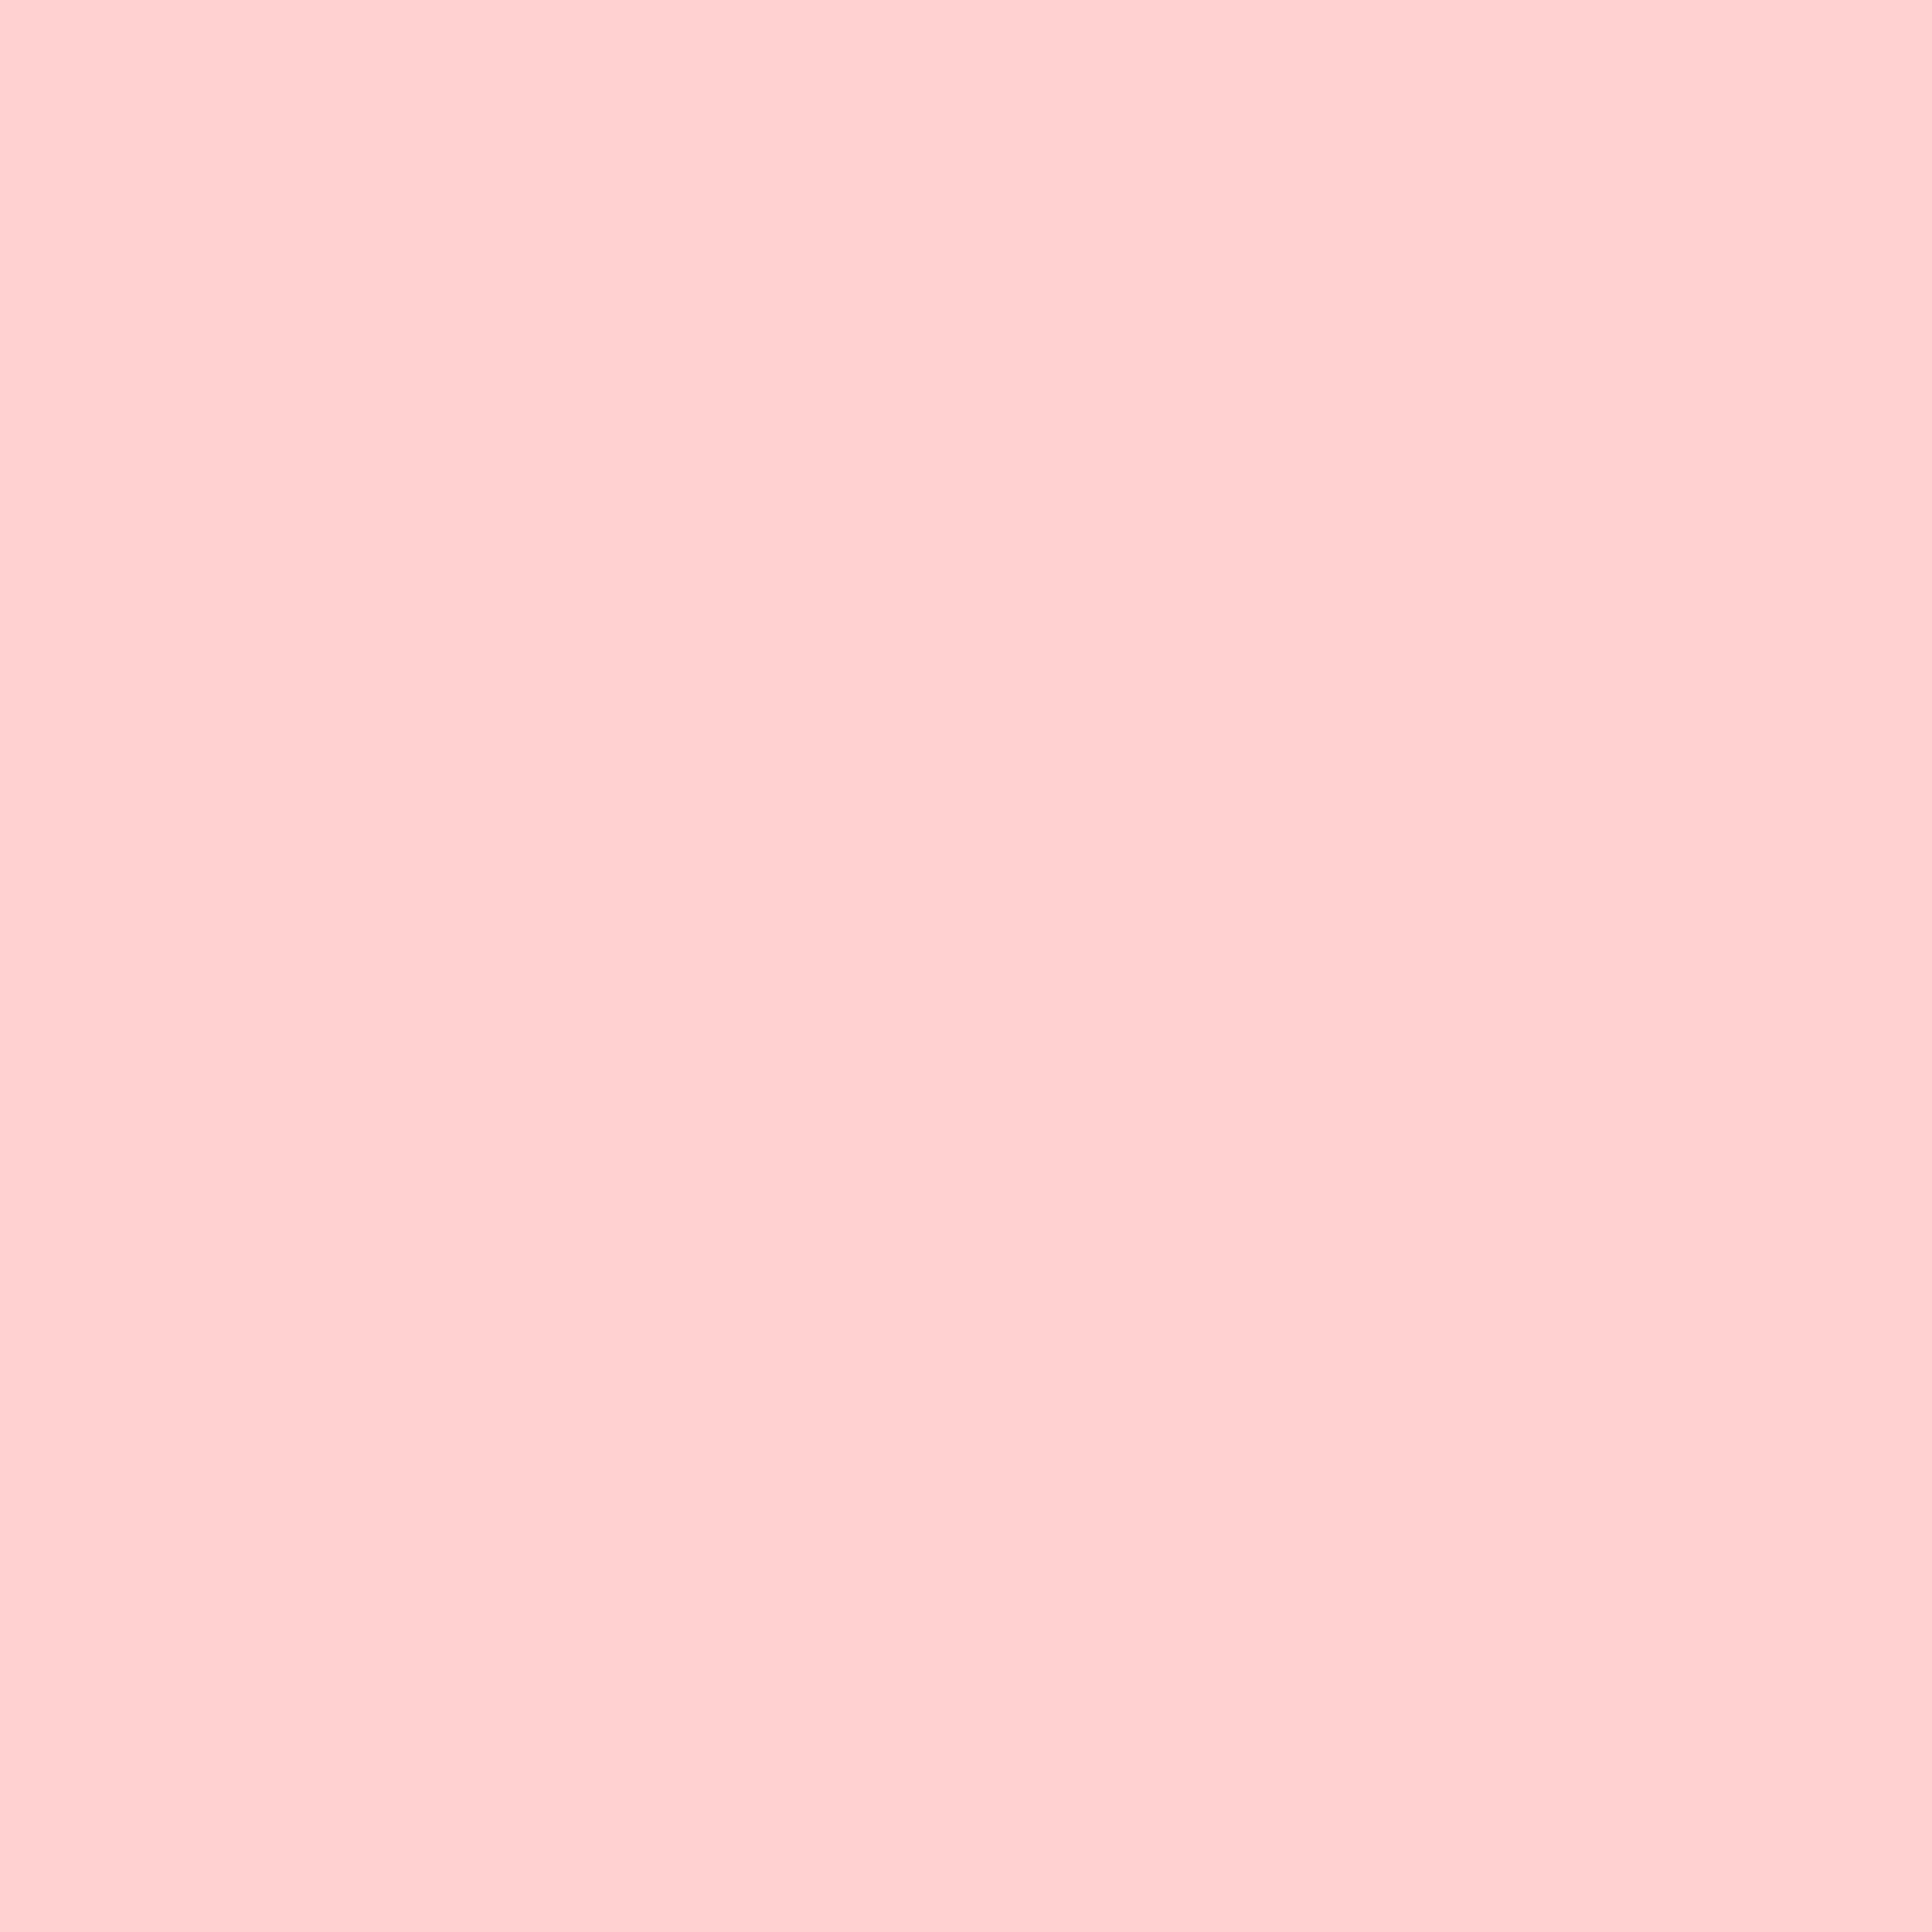 Baby Pink Wallpaper, Baby Pink Wallpapers for PC, HVGA 3:2, IVV P